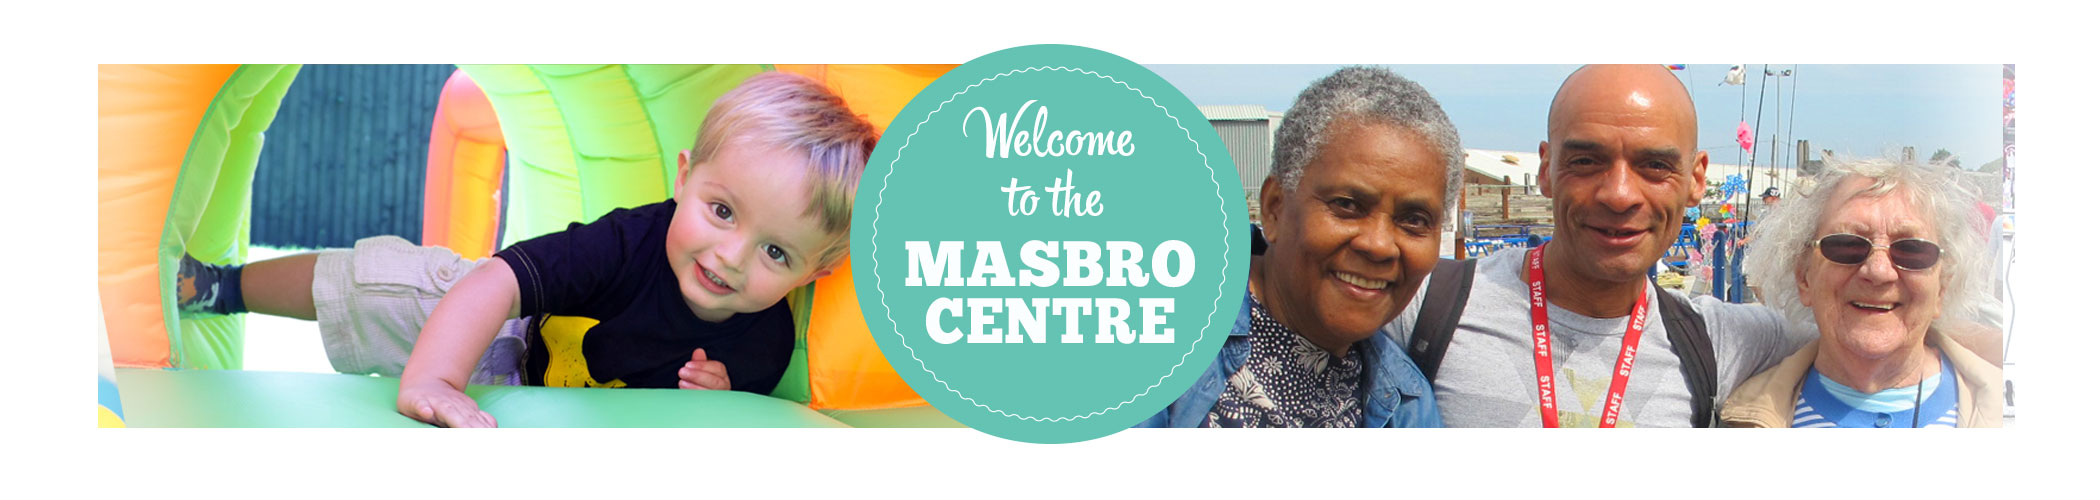 Masbro Home page iphone banner